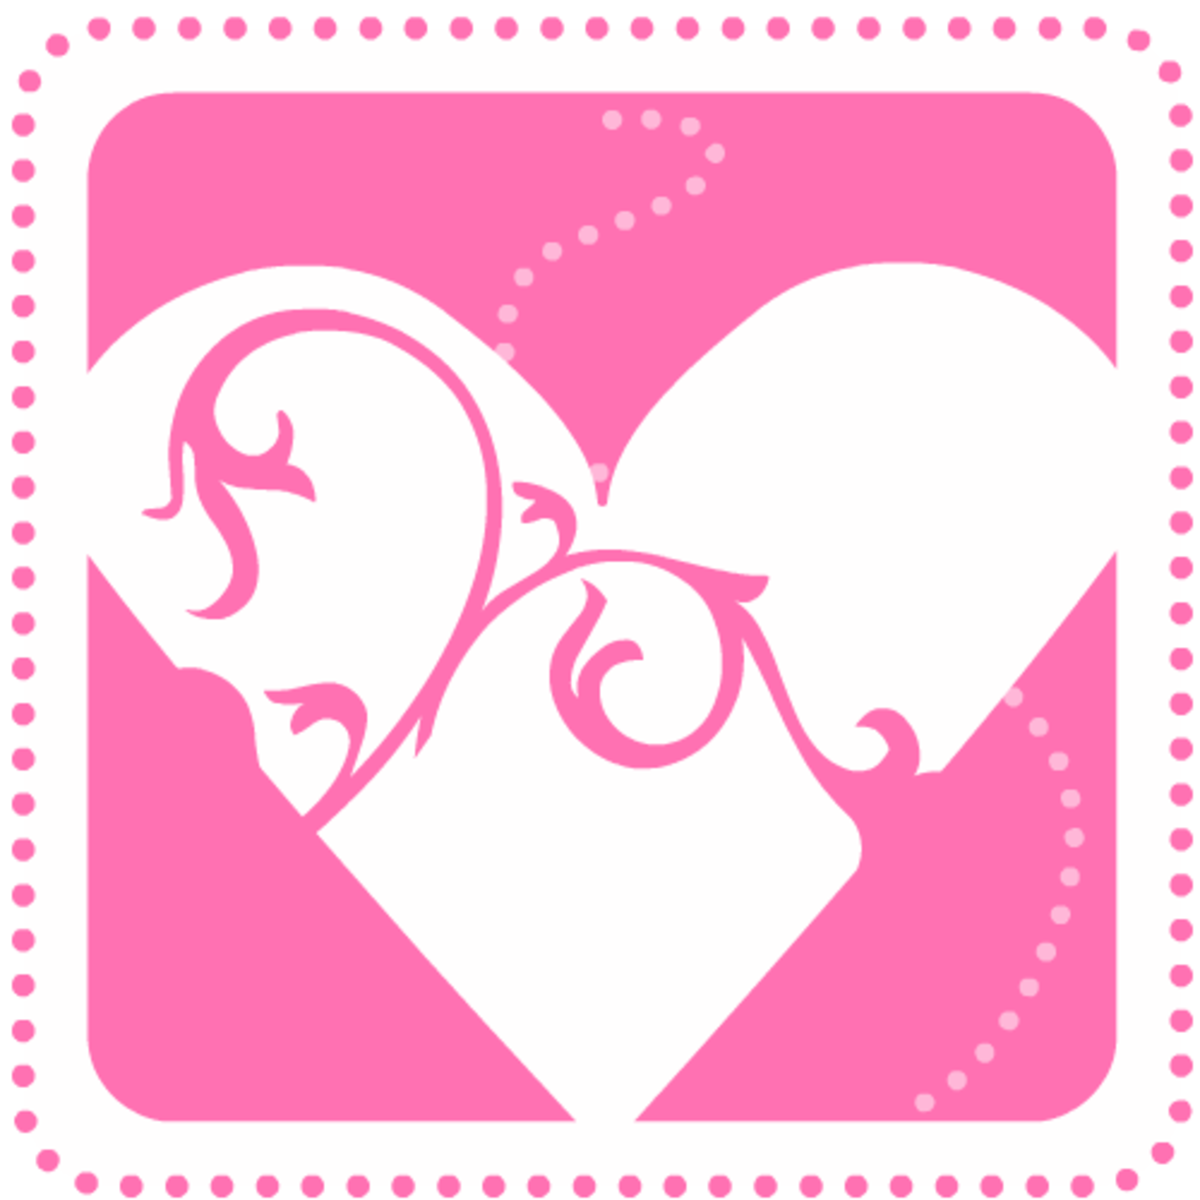 Valentine's Day clip art: Pink heart with swirls and dots